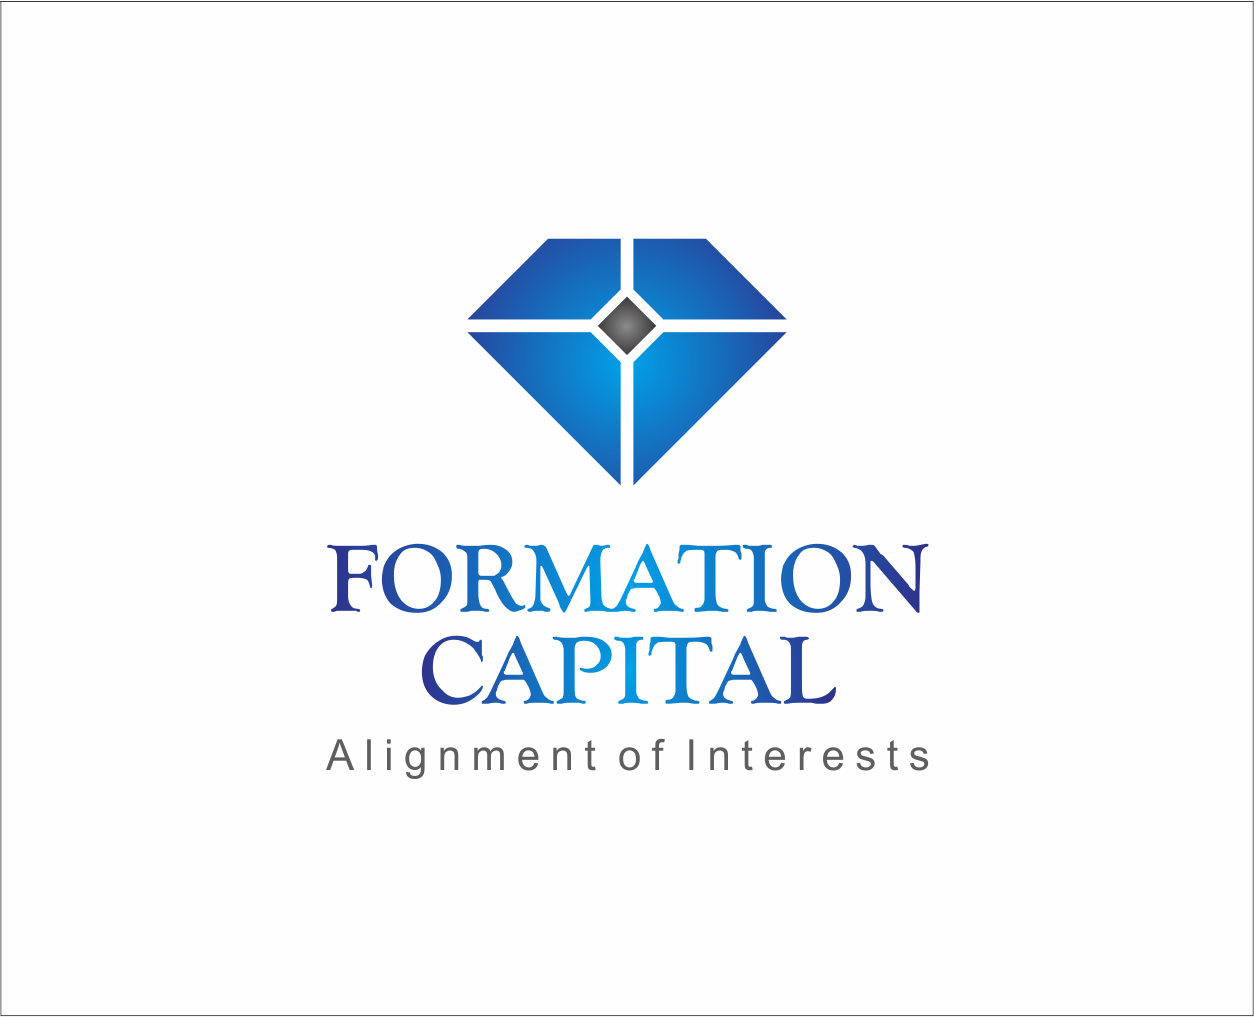 Logo Design by Armada Jamaluddin - Entry No. 201 in the Logo Design Contest Inspiring Logo Design for Formation Capital.